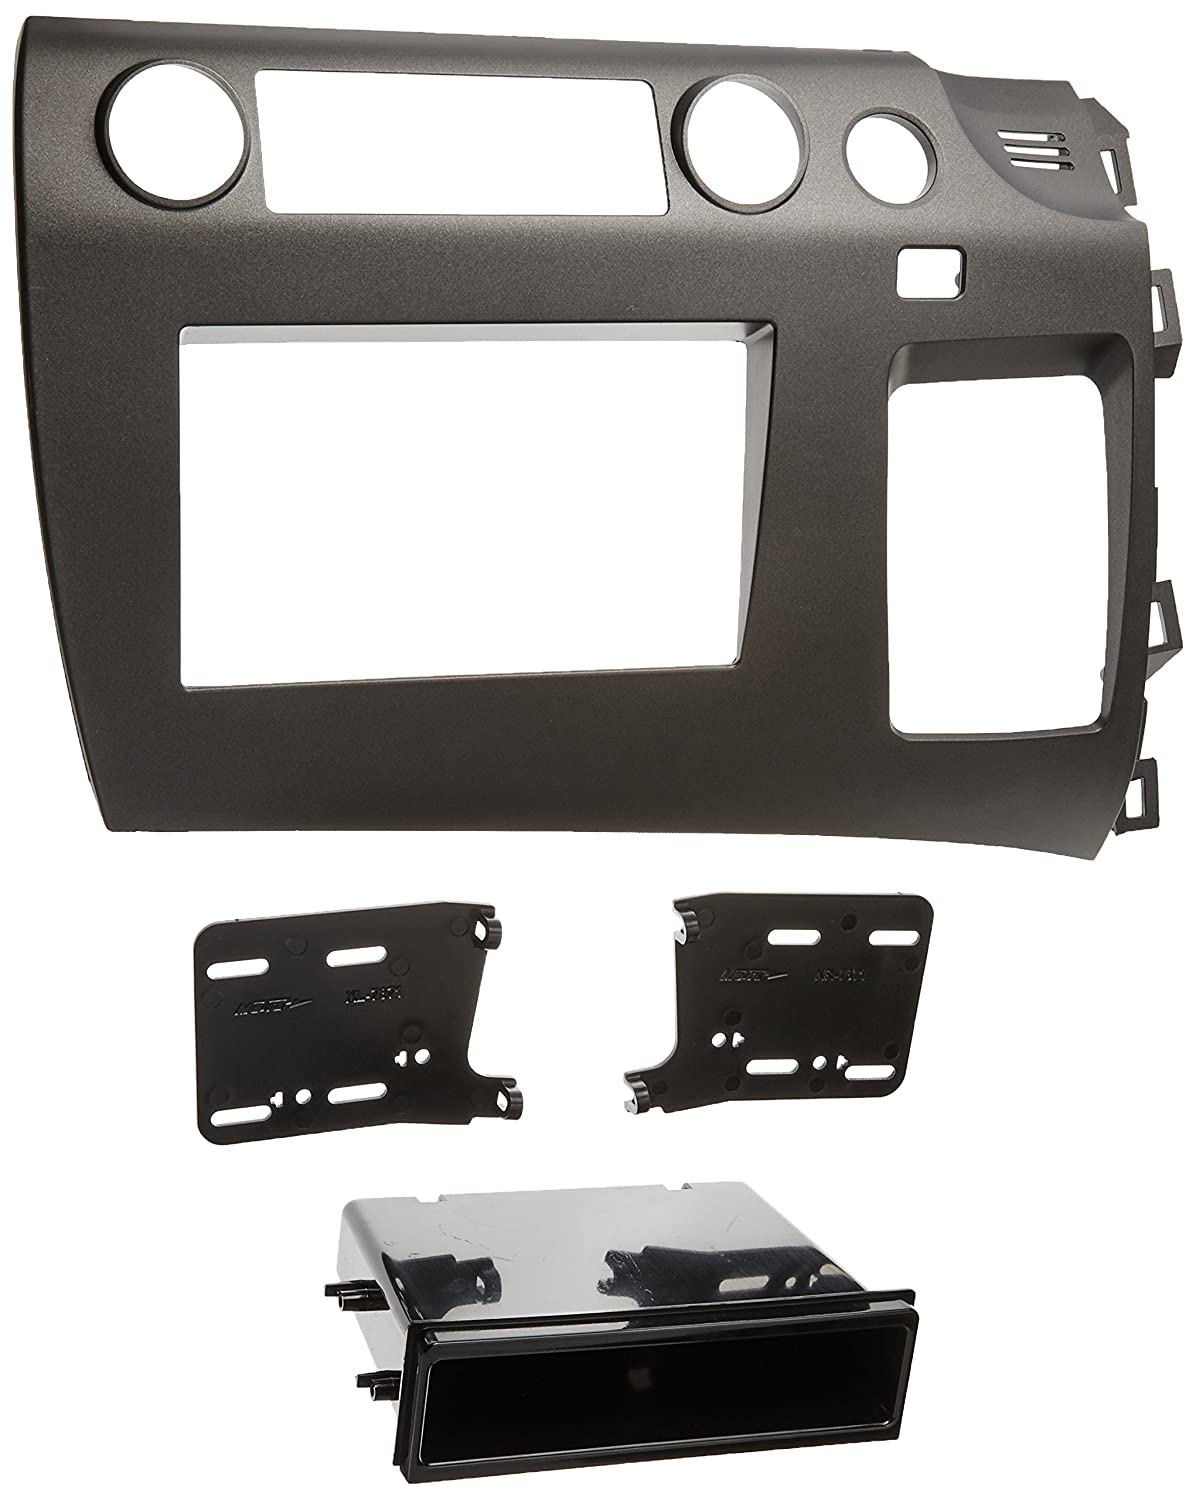 Metra 99-7871 Single DIN/Double DIN Installation Kit for 2006-2009 Honda Civic Vehicles Charcoal Grey